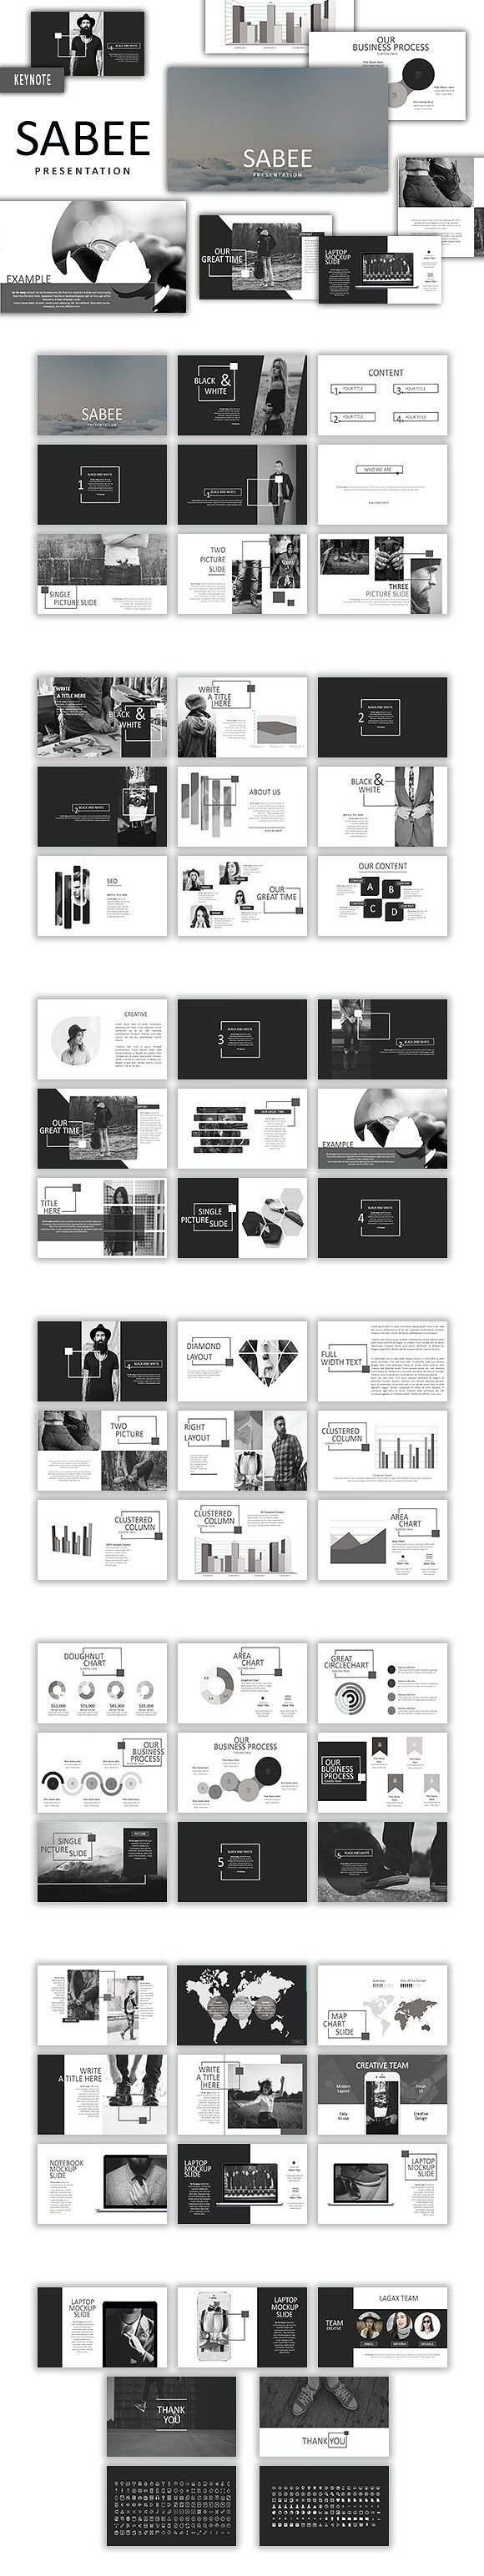 Sabee Keynote Template. Presentation Templates